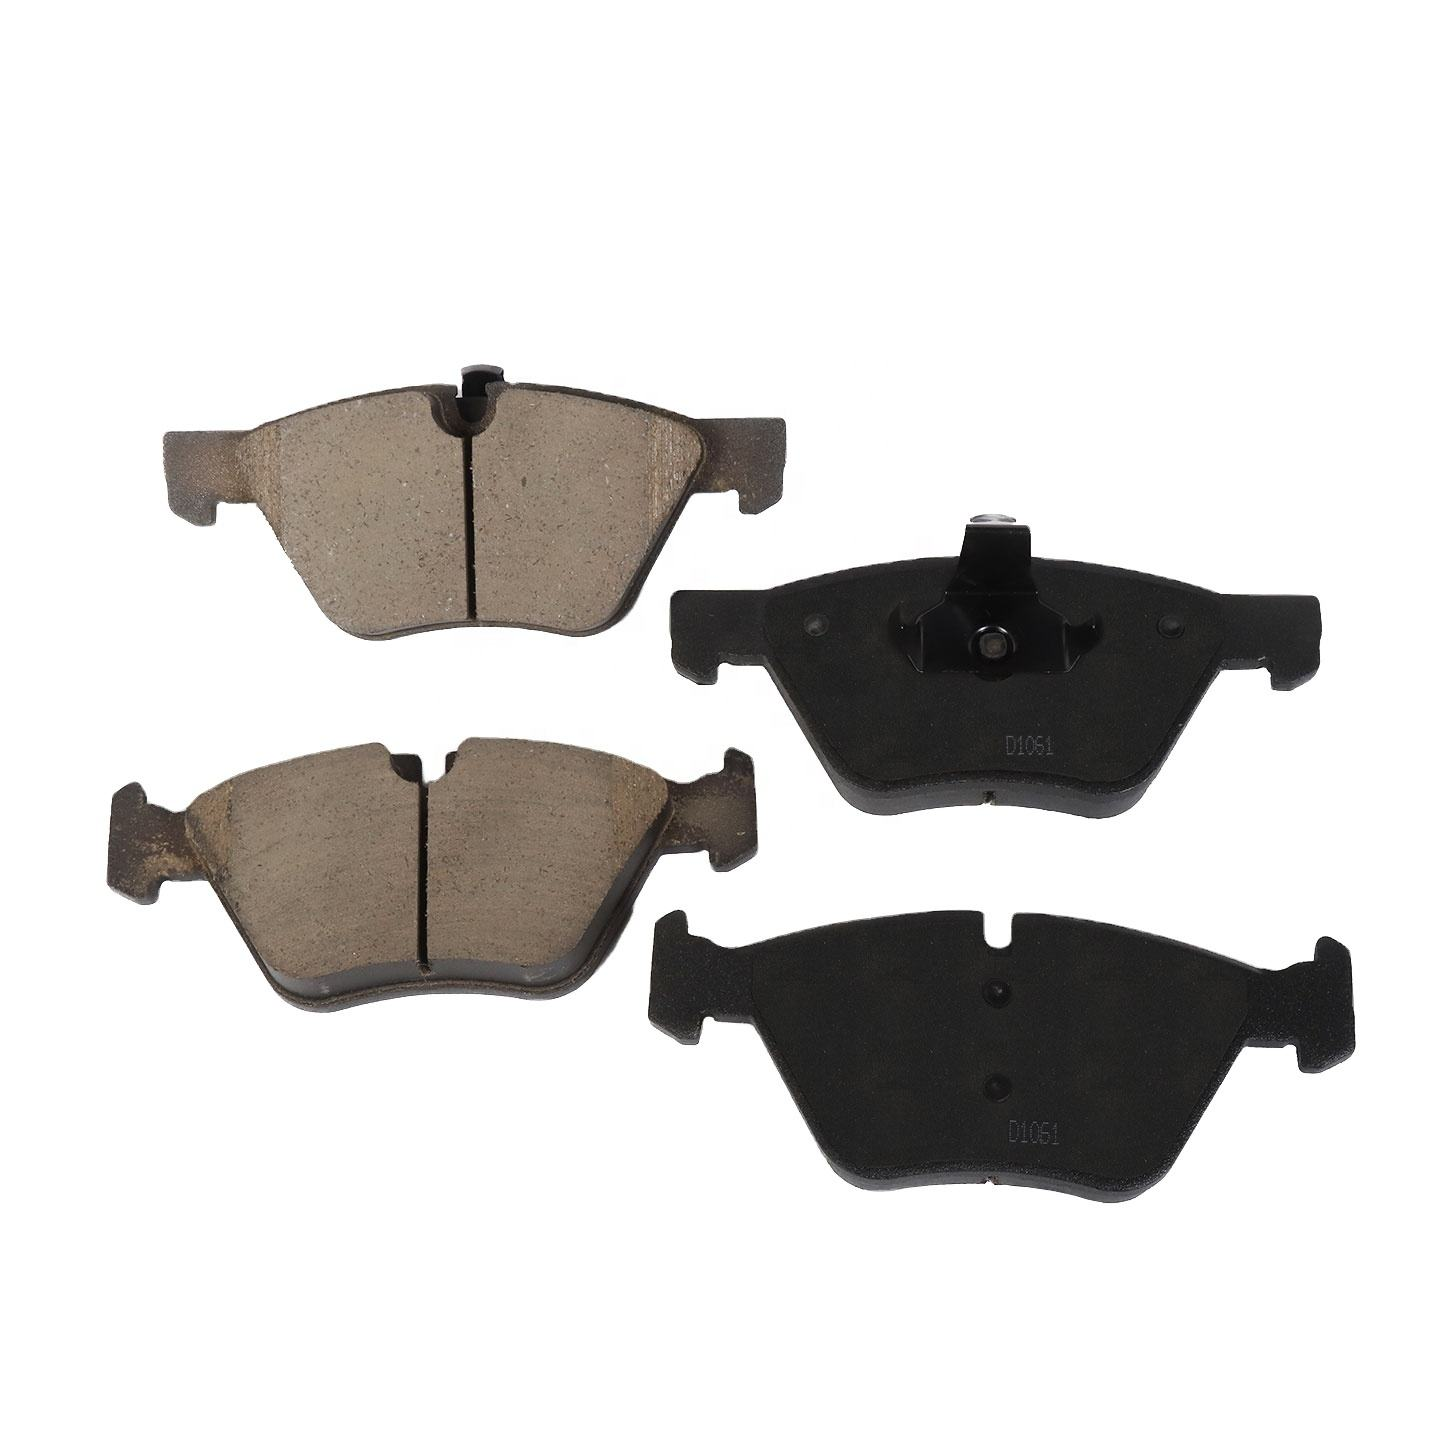 D1061 Brake Systems Manufacturer Price Auto Car Parts Spare Ceramic Front Brake Pads For Bmw Car Brakes